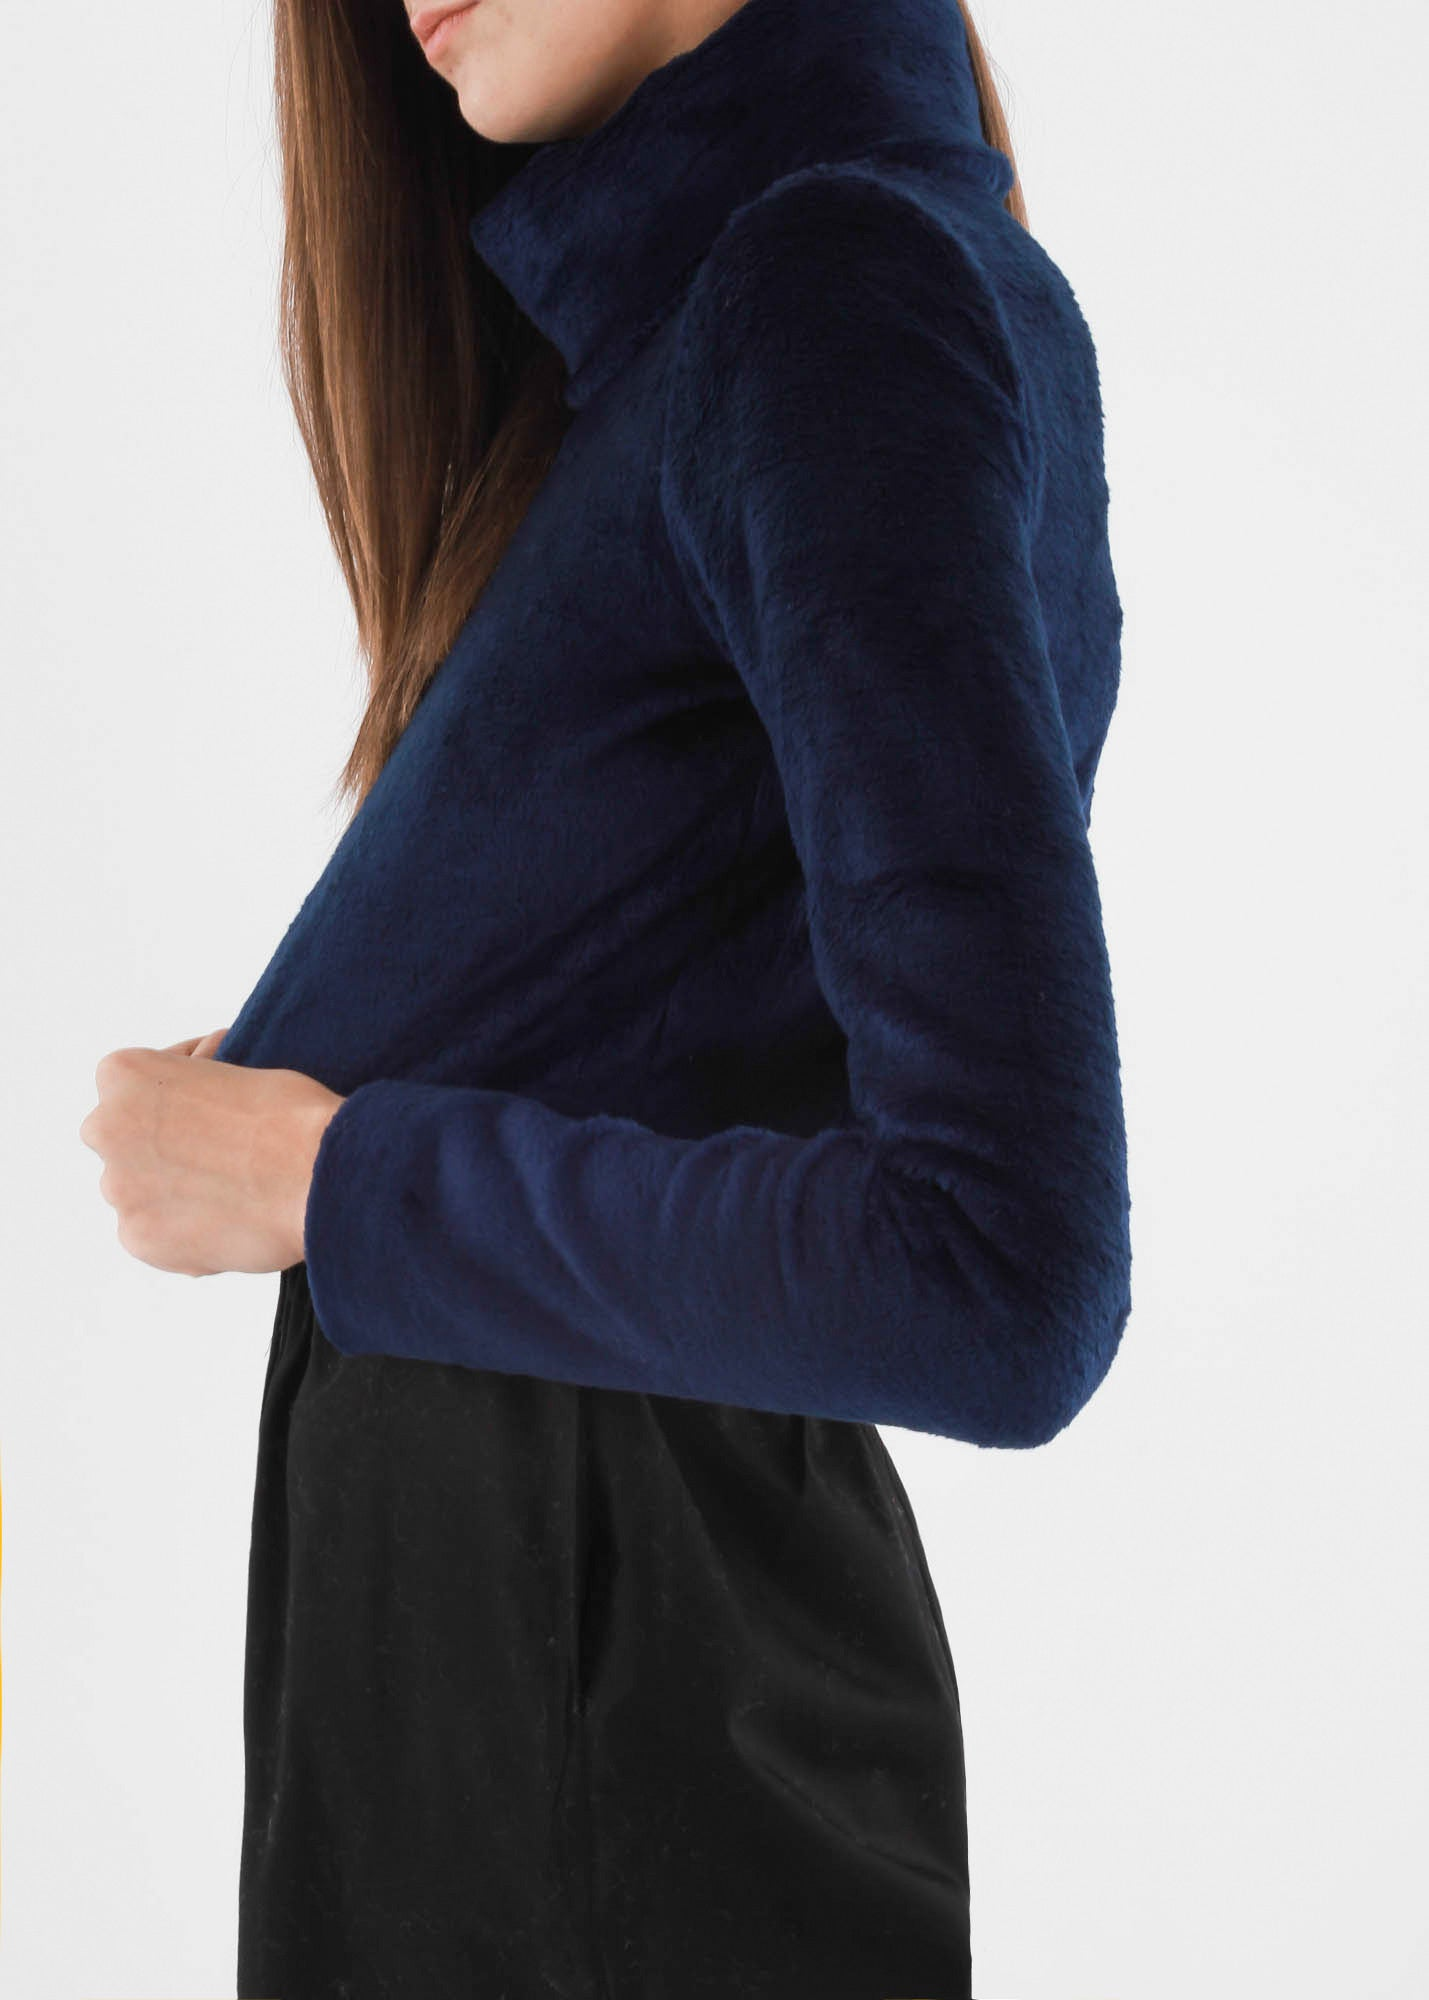 Carleen Navy Funnel Neck Sweater - New Classics Studios  - 4